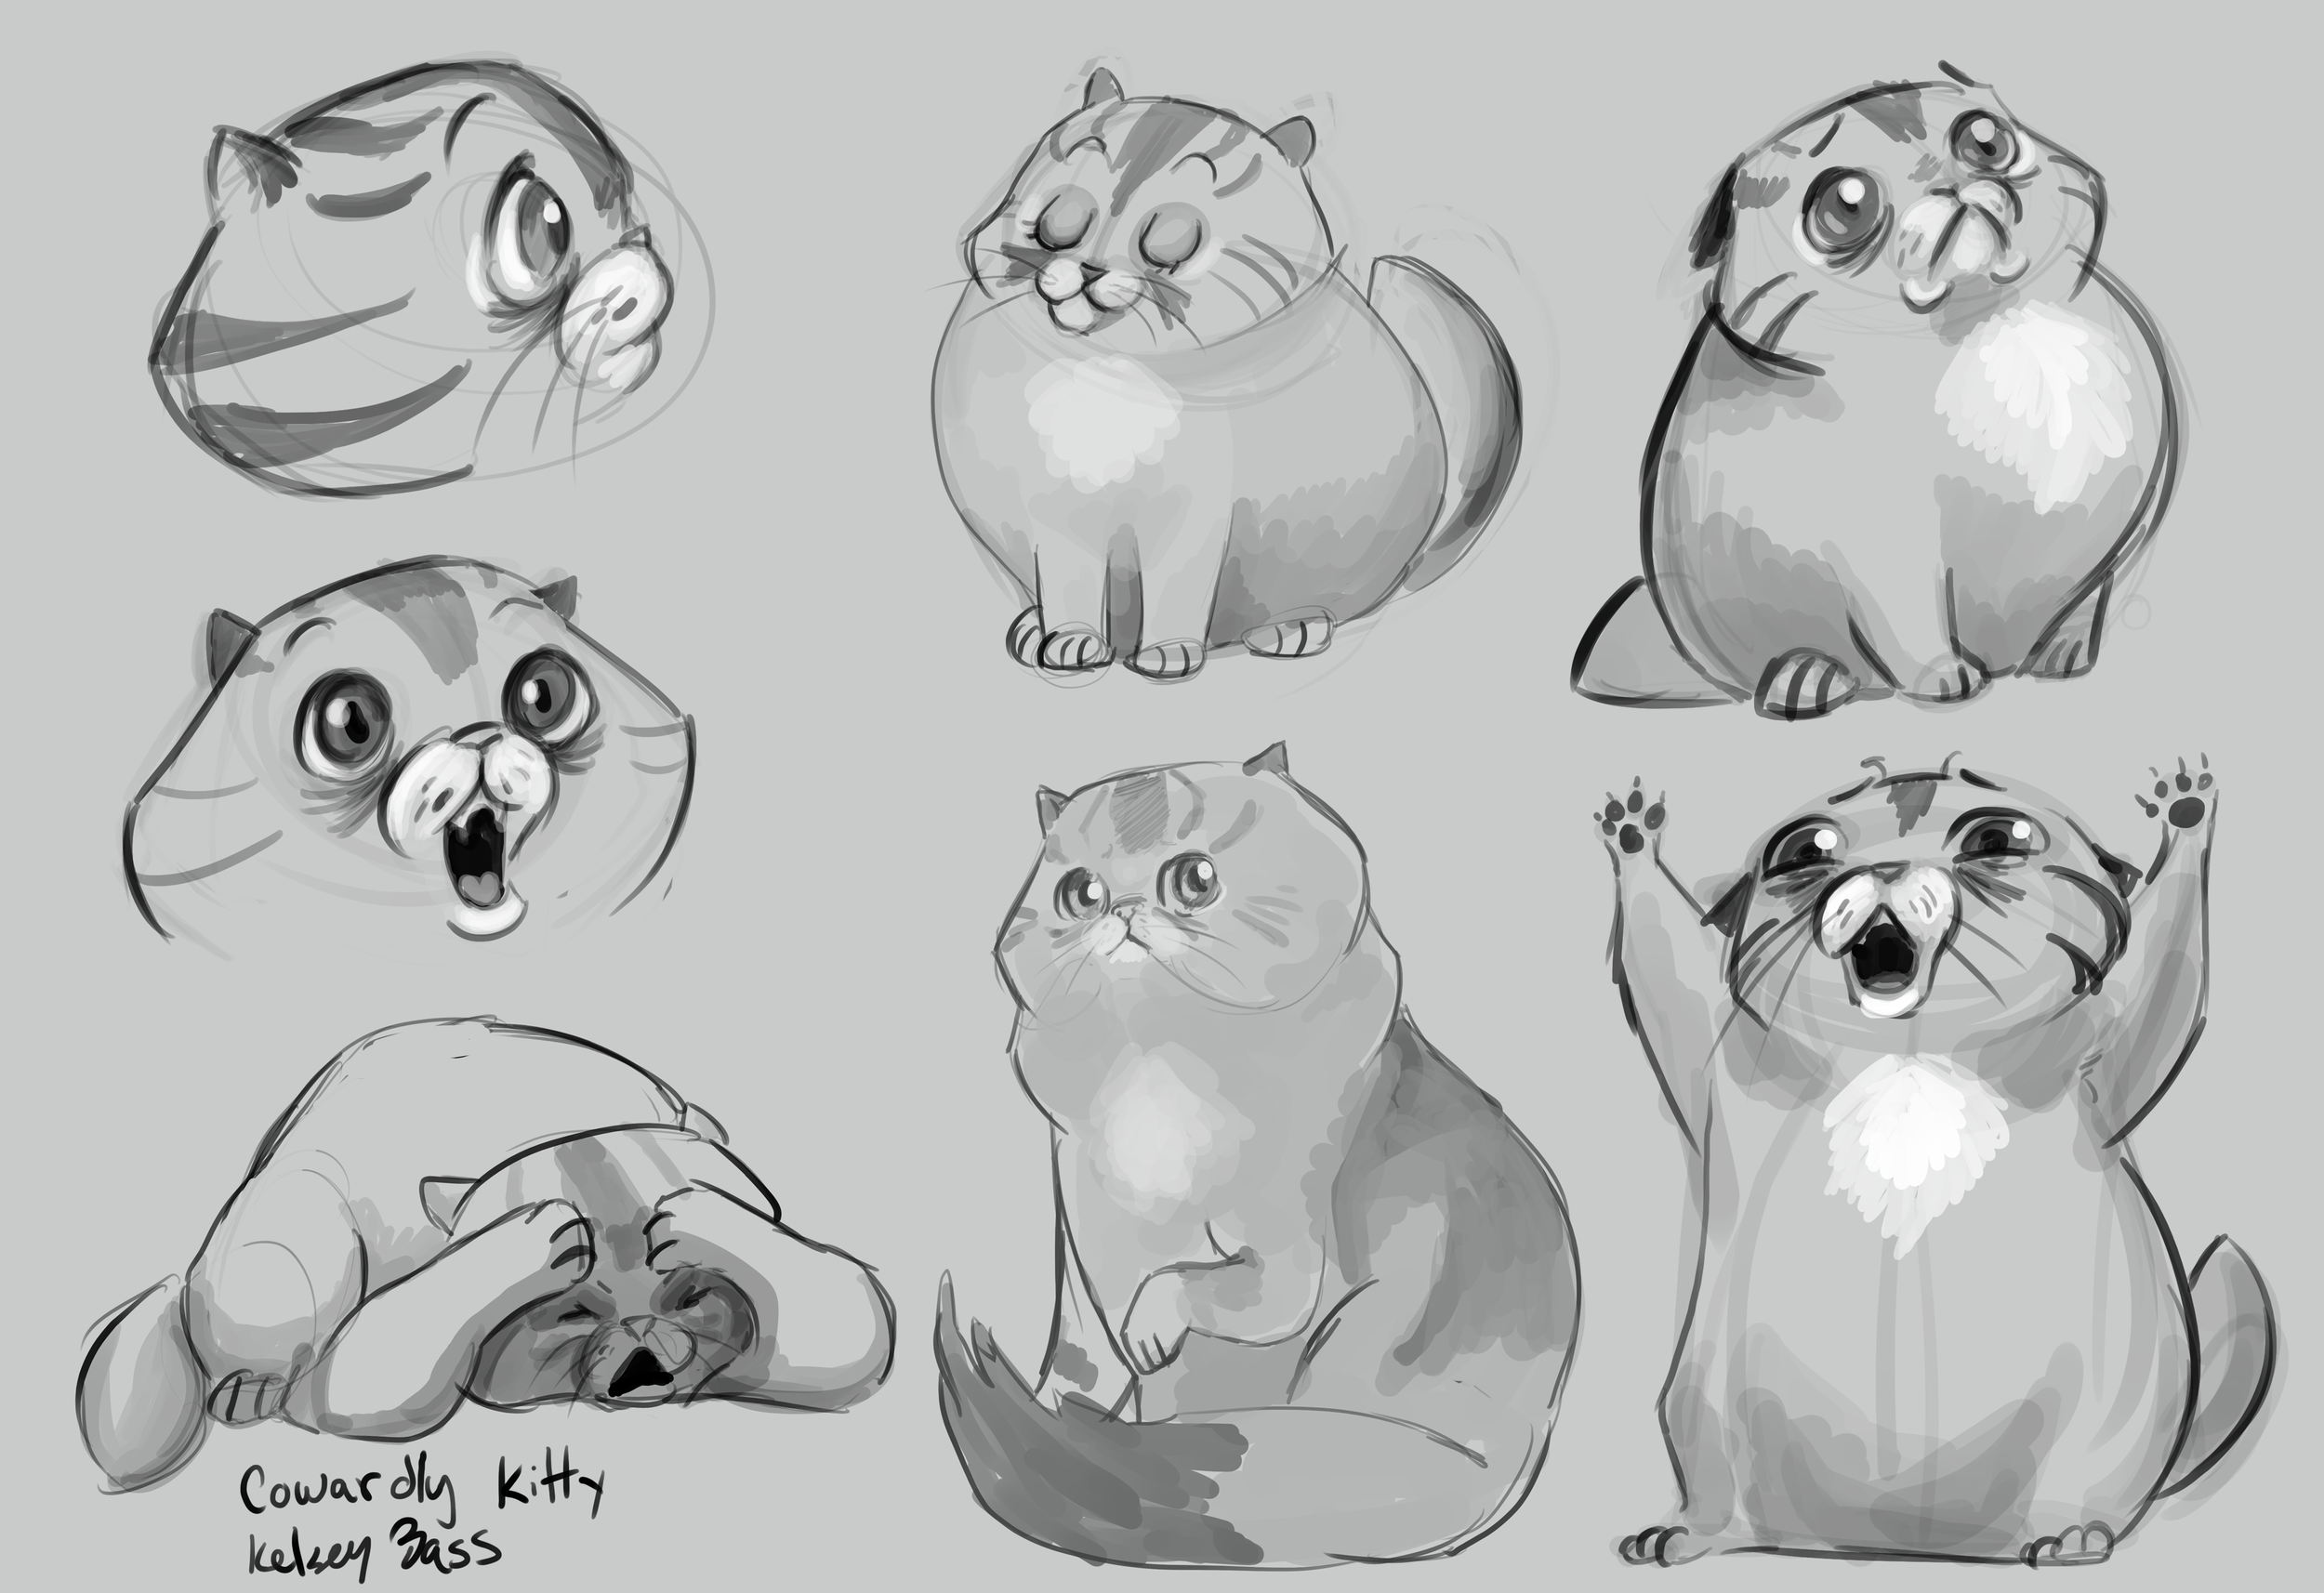 Cowardly Kitty digital sketches